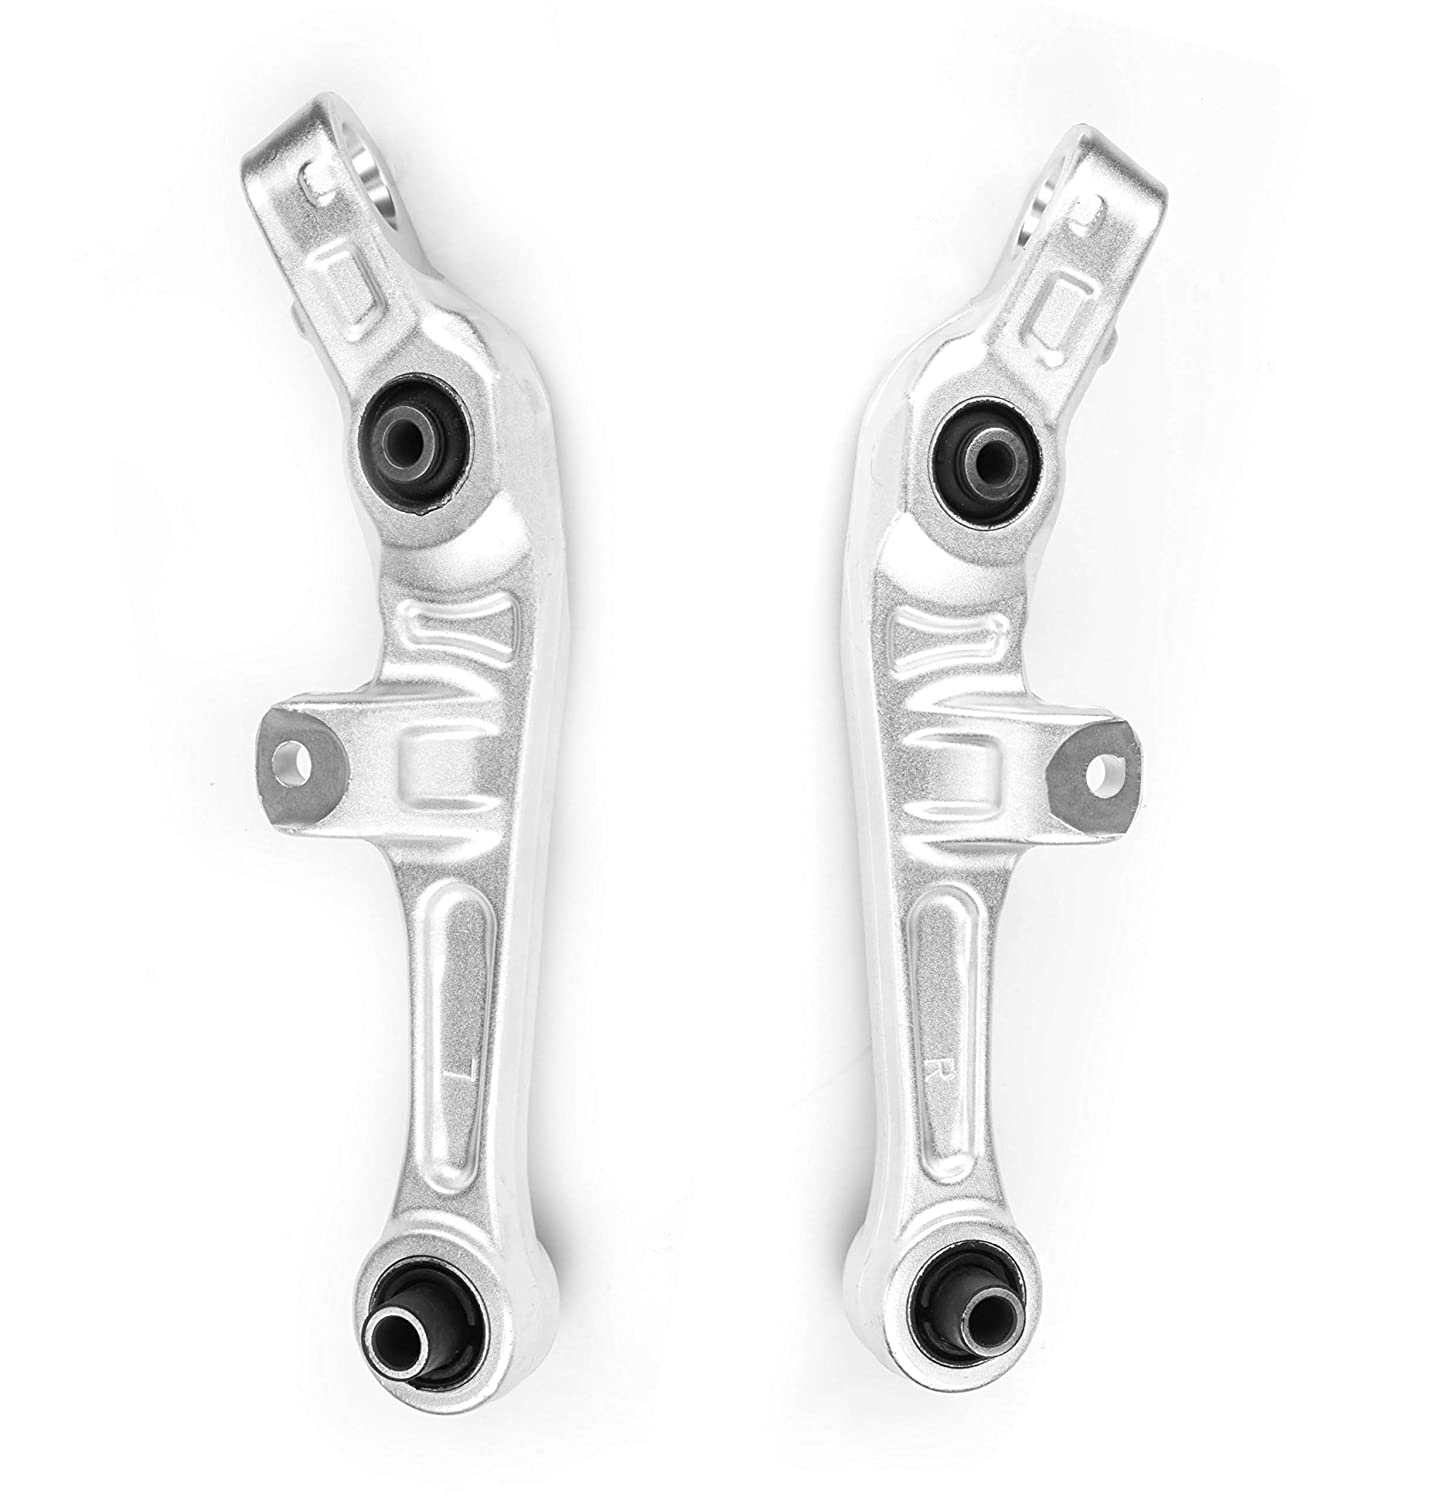 ADIGARAUTO K641594 K641595 2PCS Front Lower Control Arm Compatible with 2003-2004 Infiniti G35 Nissan 350Z